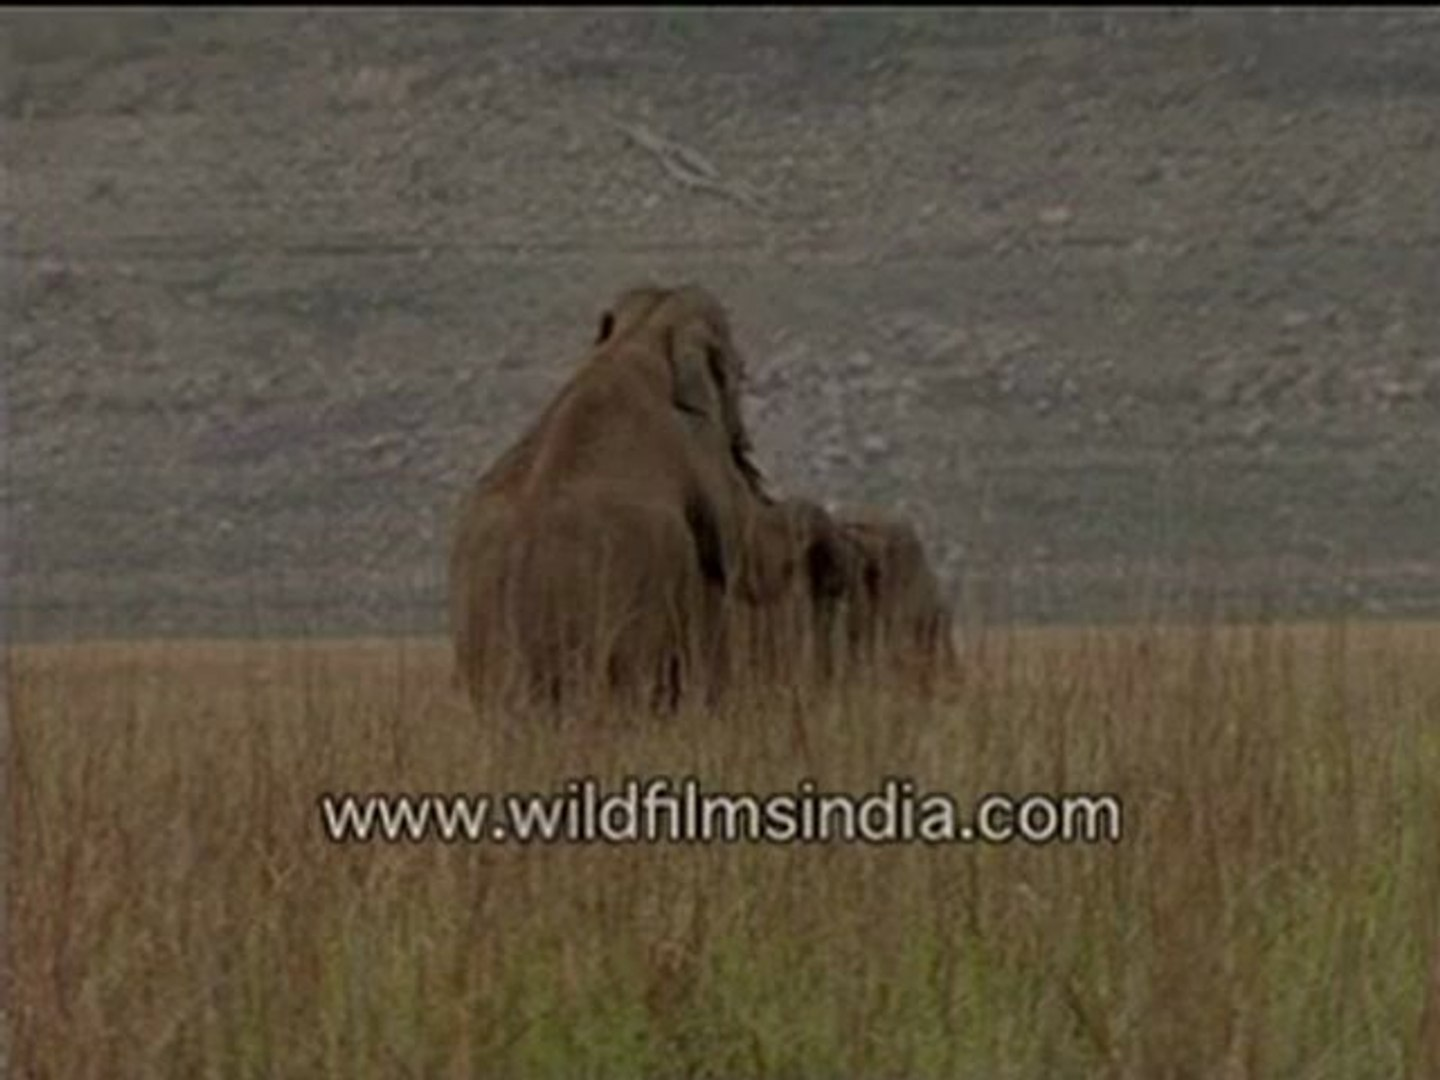 Elephant sex in the Himalayan foothills